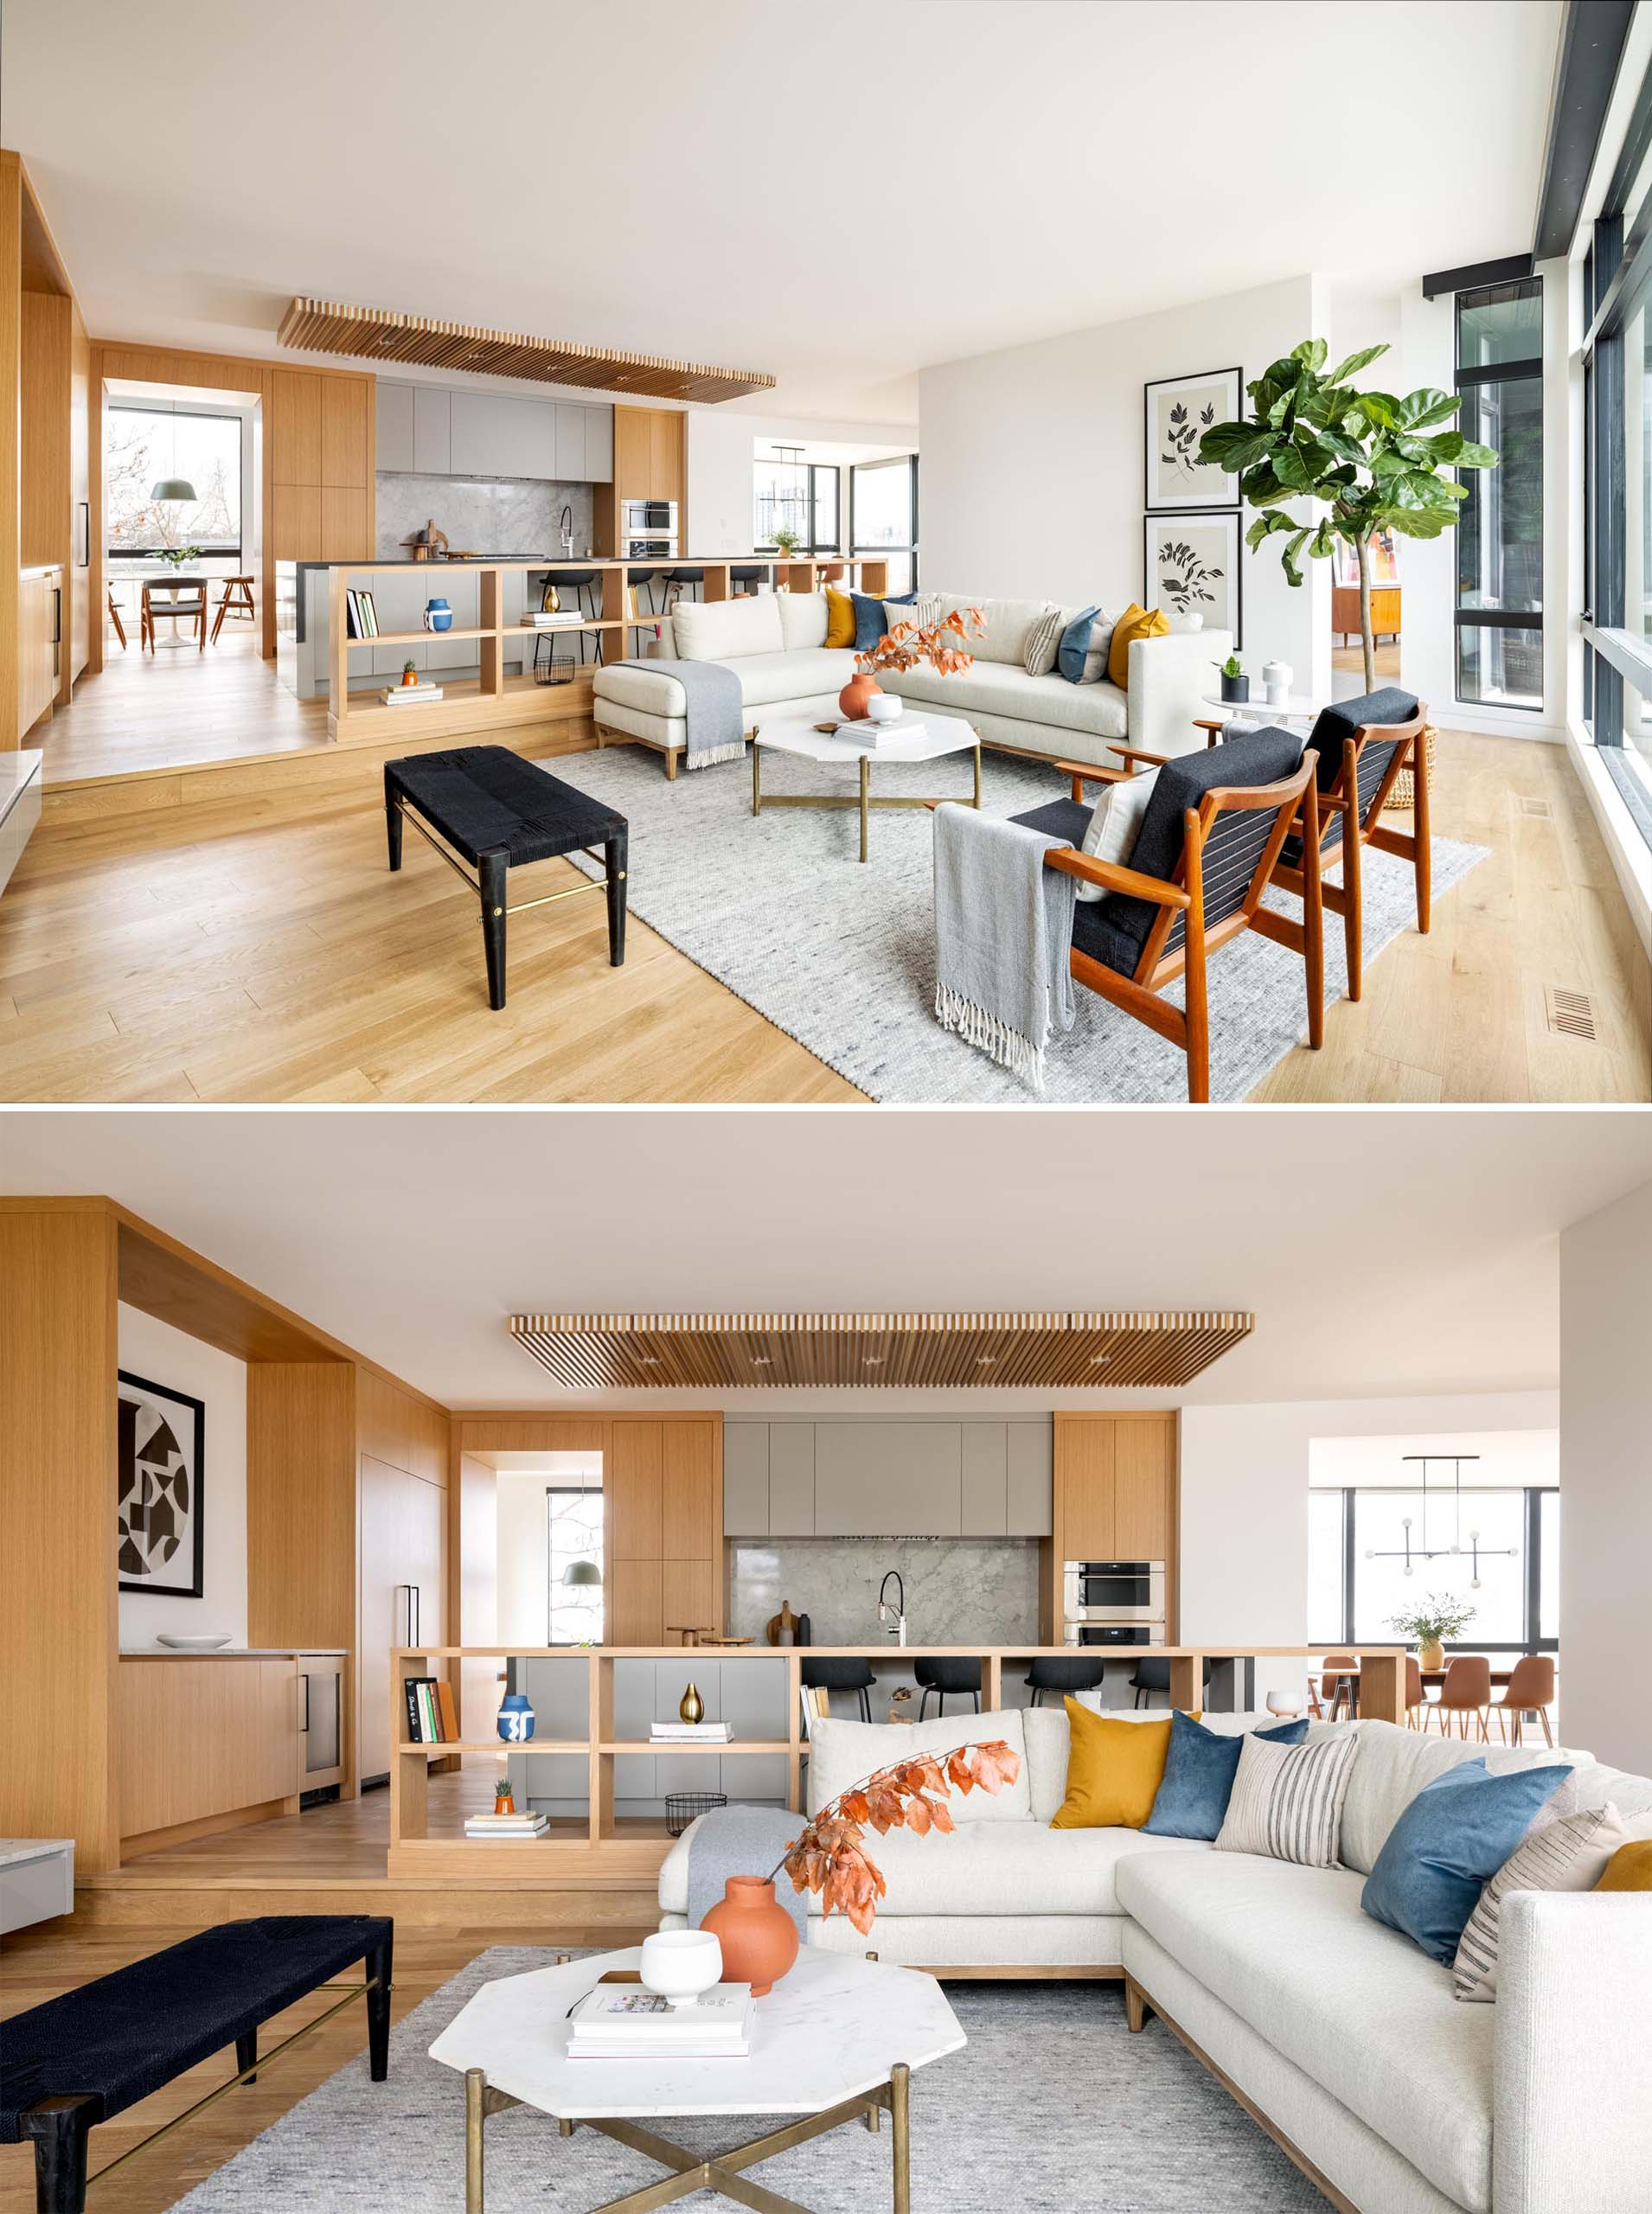 This modern living room is flooded by natural light from the large windows, which were included to frame views to the downtown skyline.